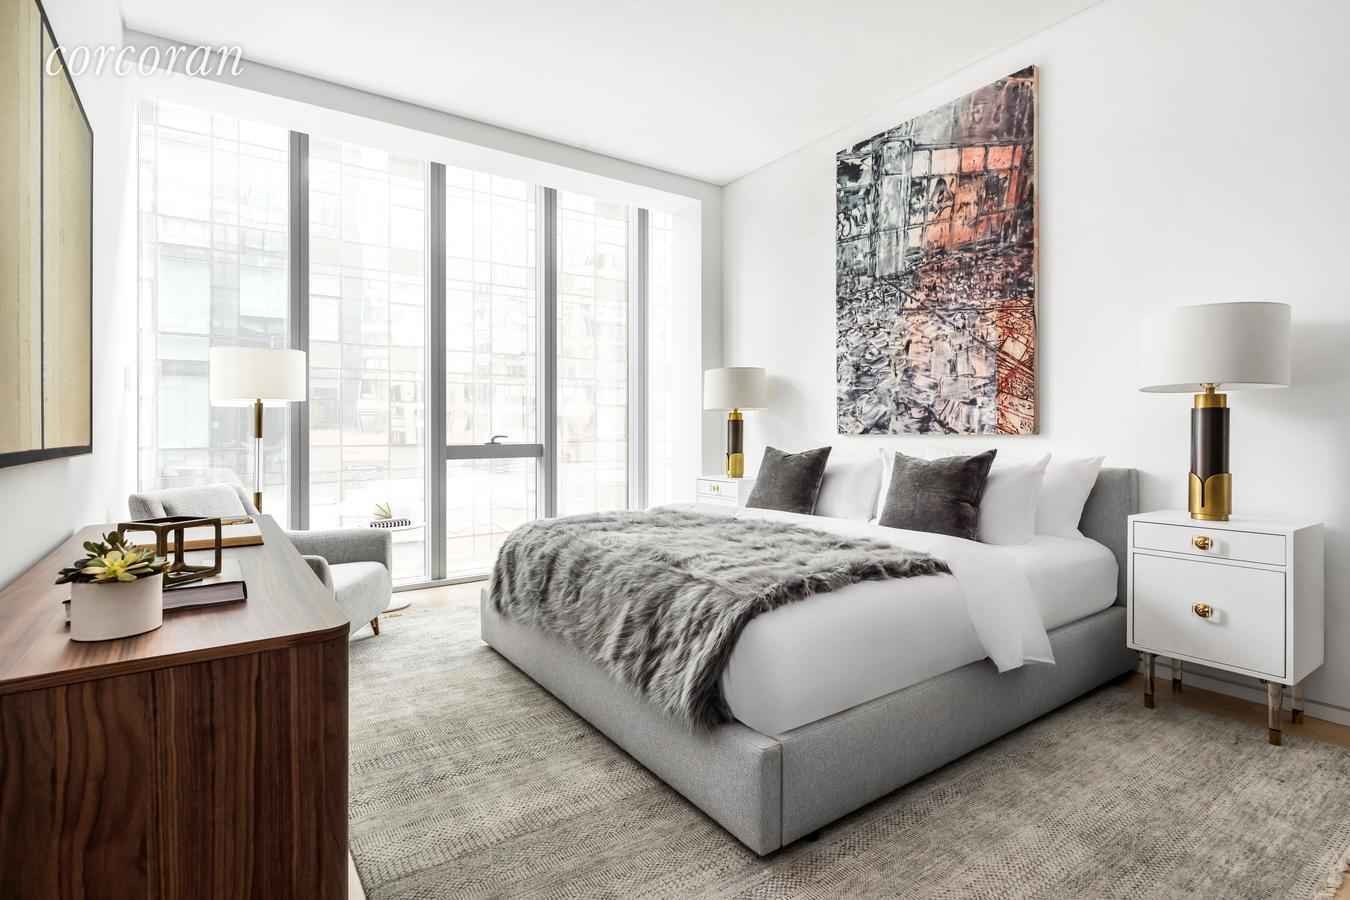 Apartment for sale at 515 West 29th Street, Apt 9